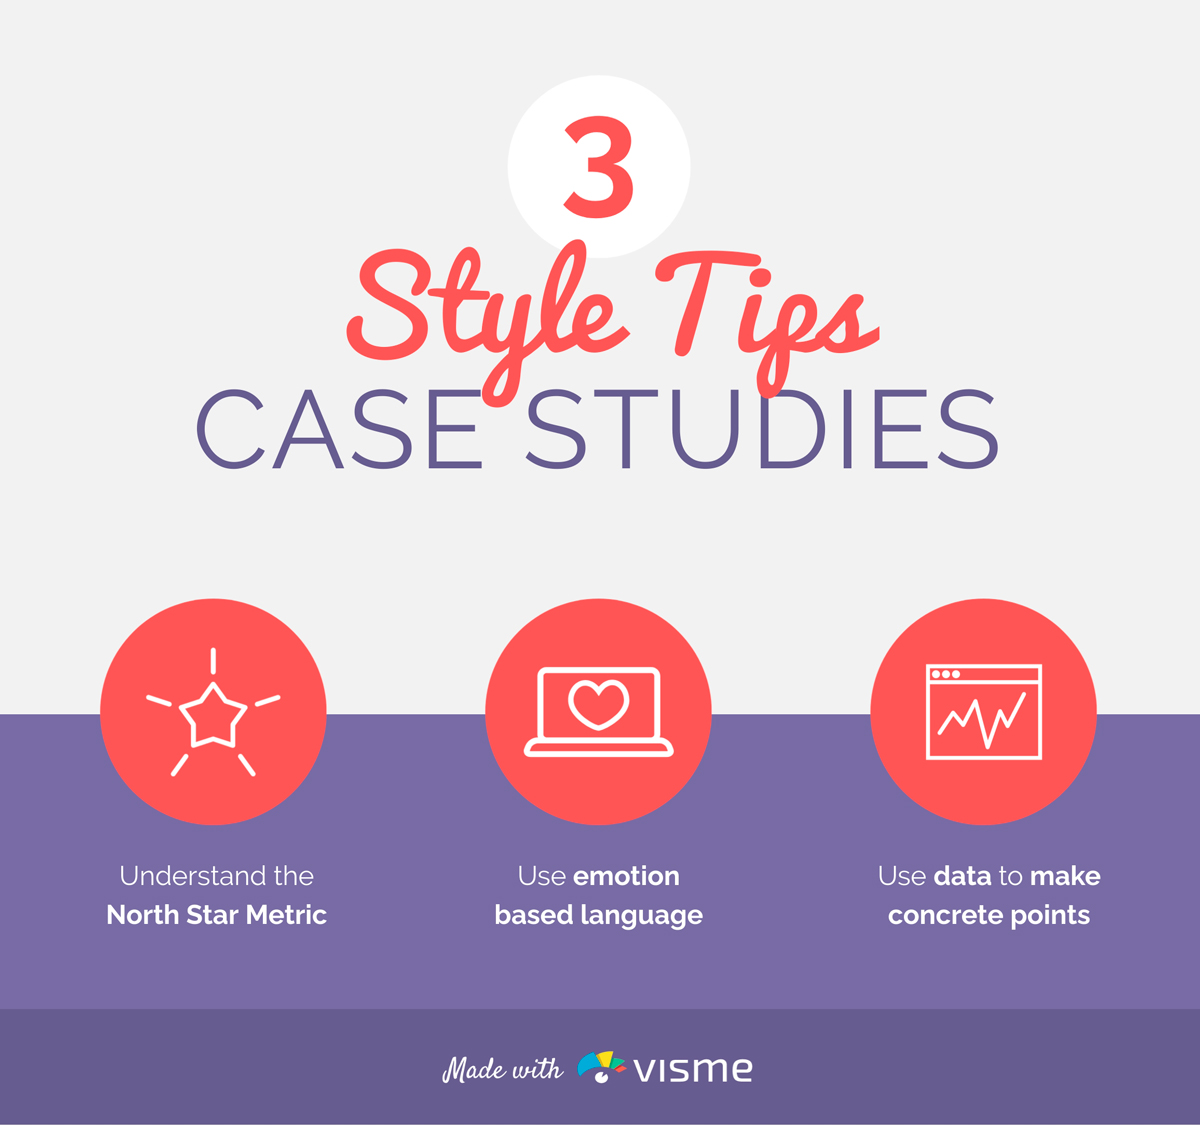 An infographic sharing three style tips for case studies.